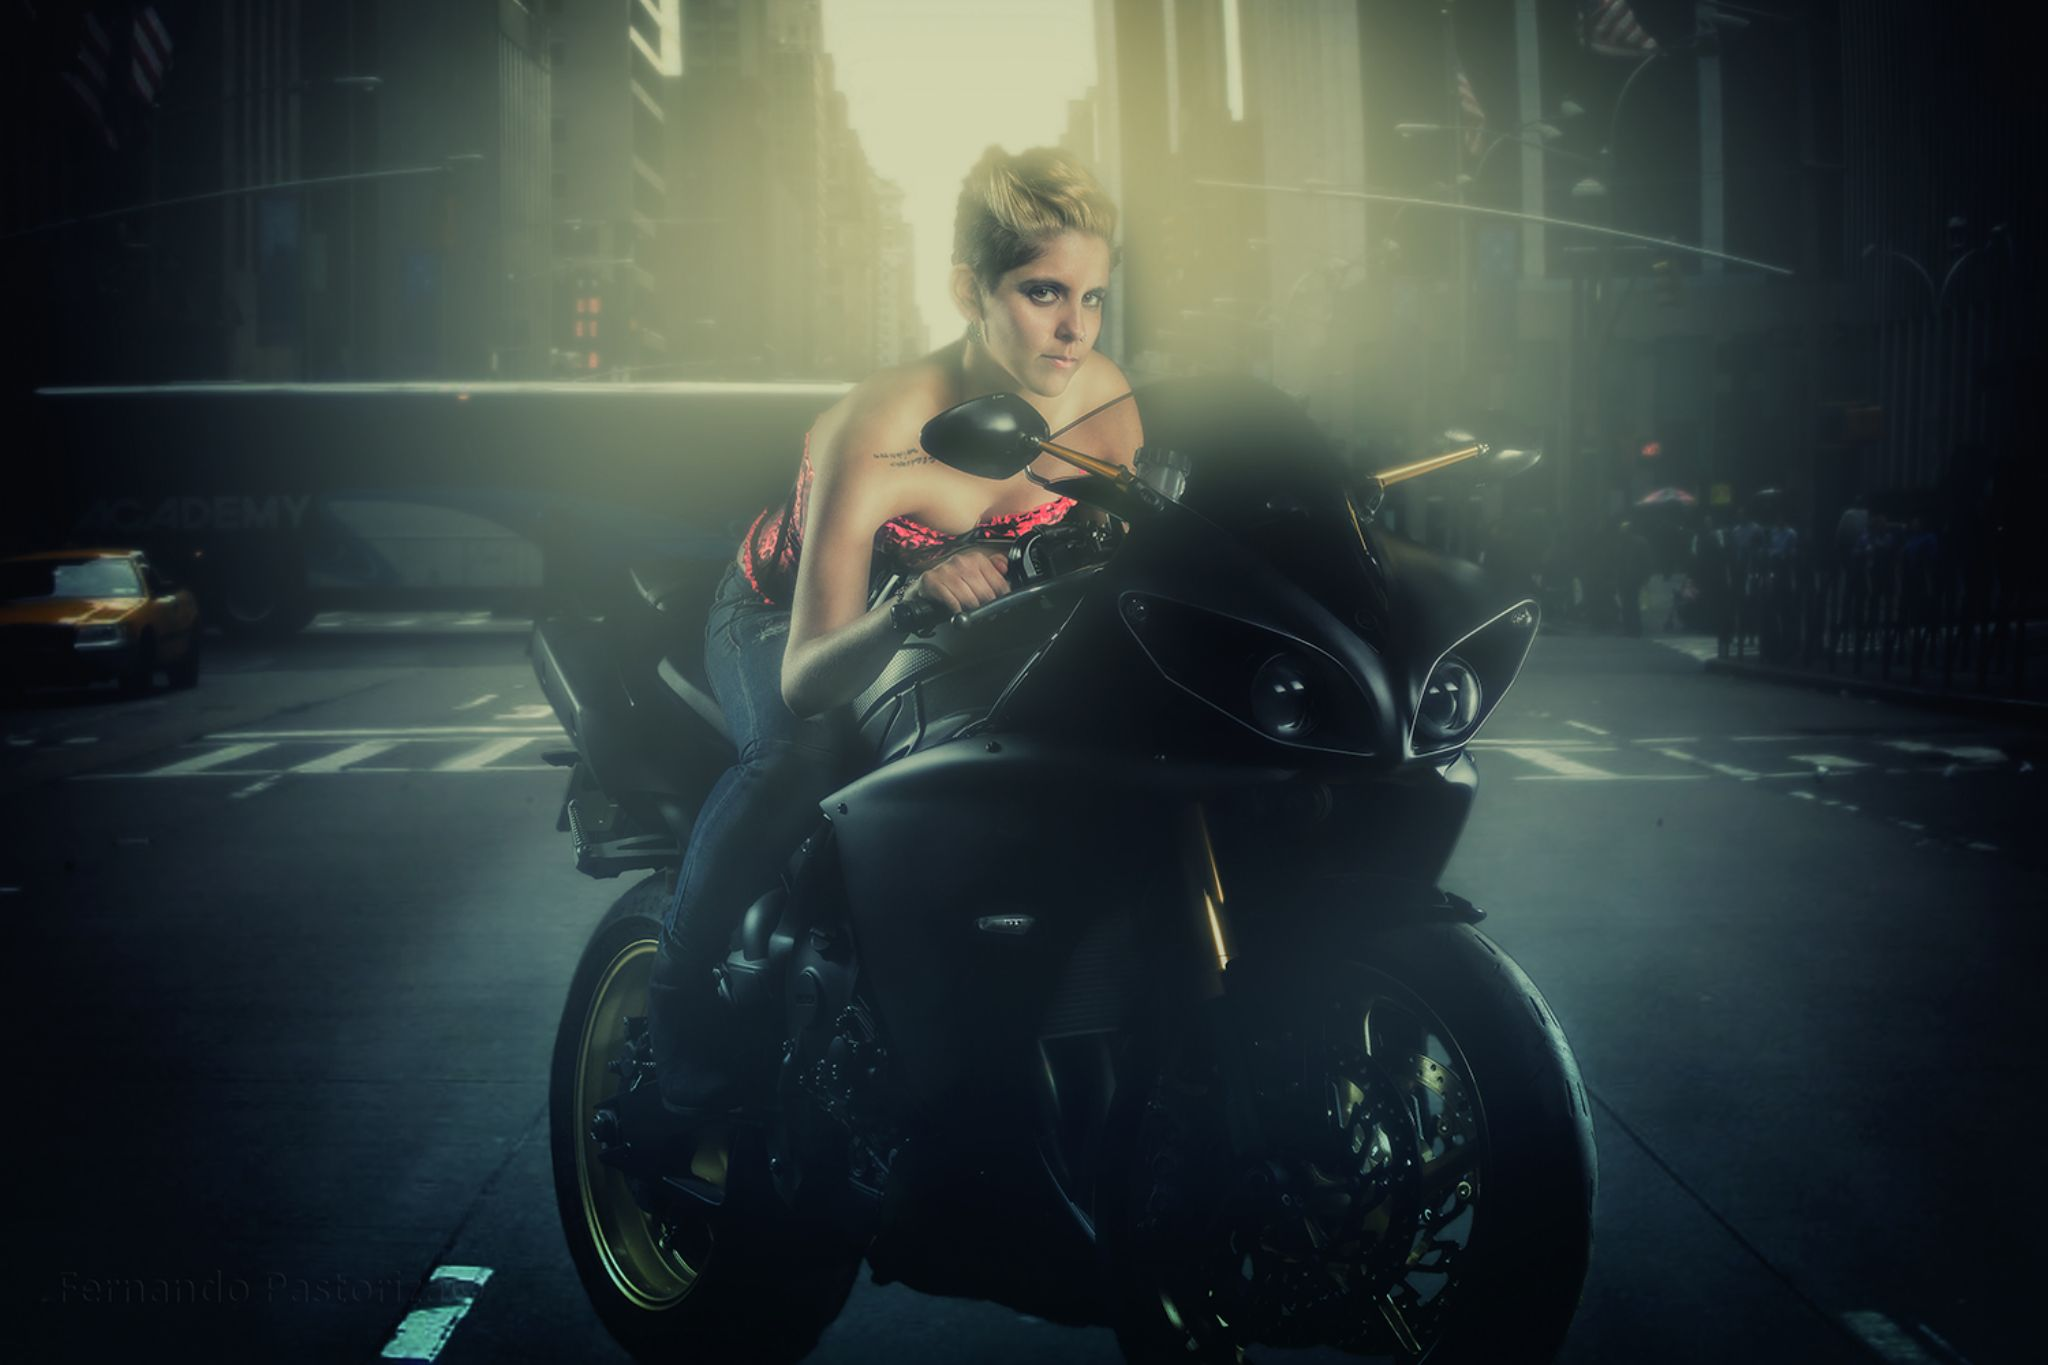 Sofia and Yamaha R1 by pastoriza